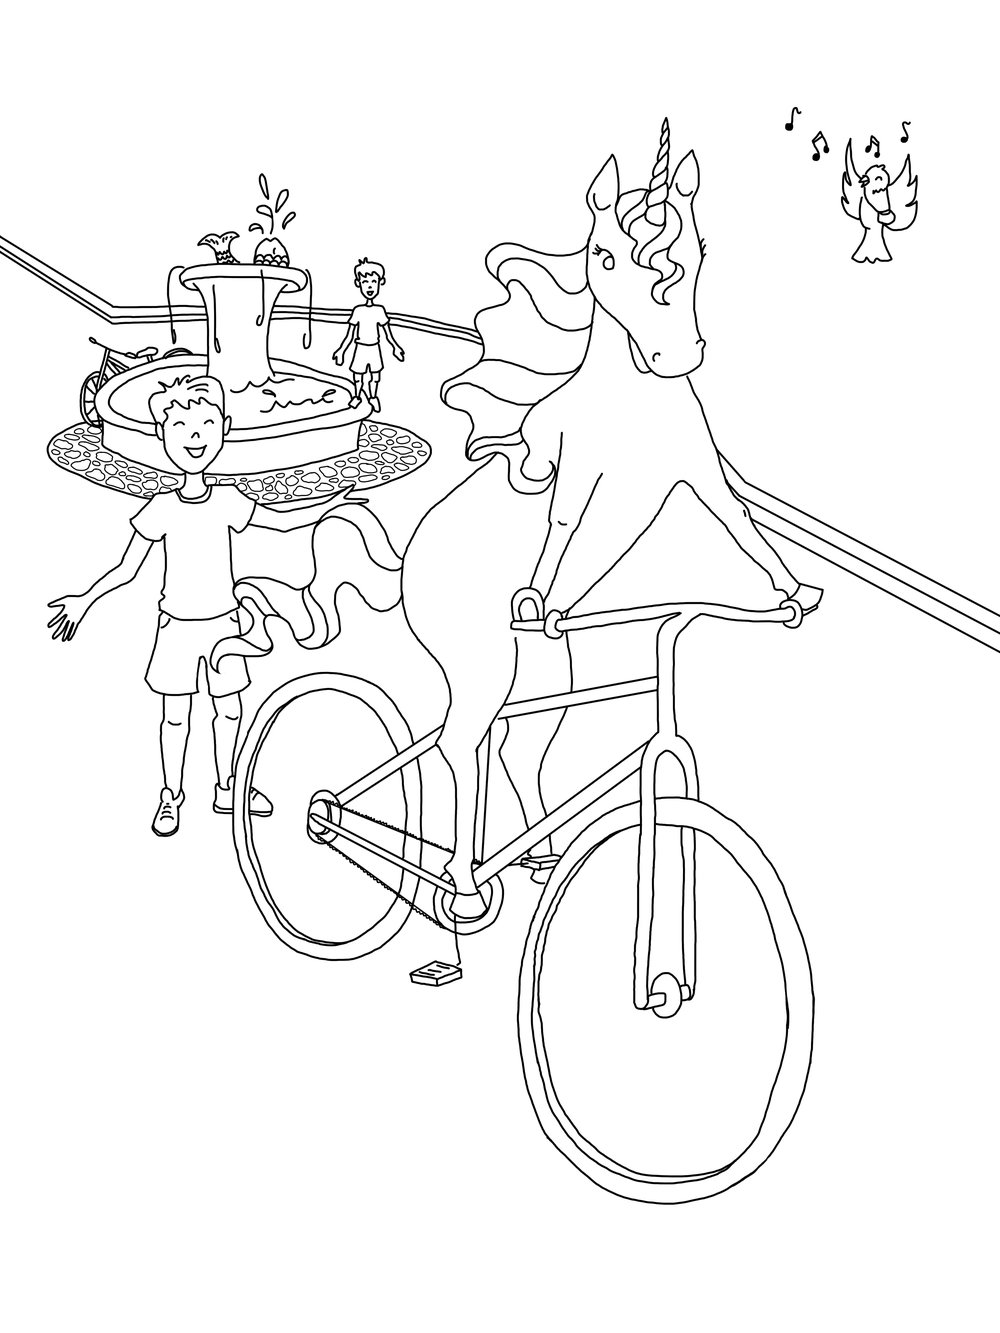 Coloring Page 02.jpg